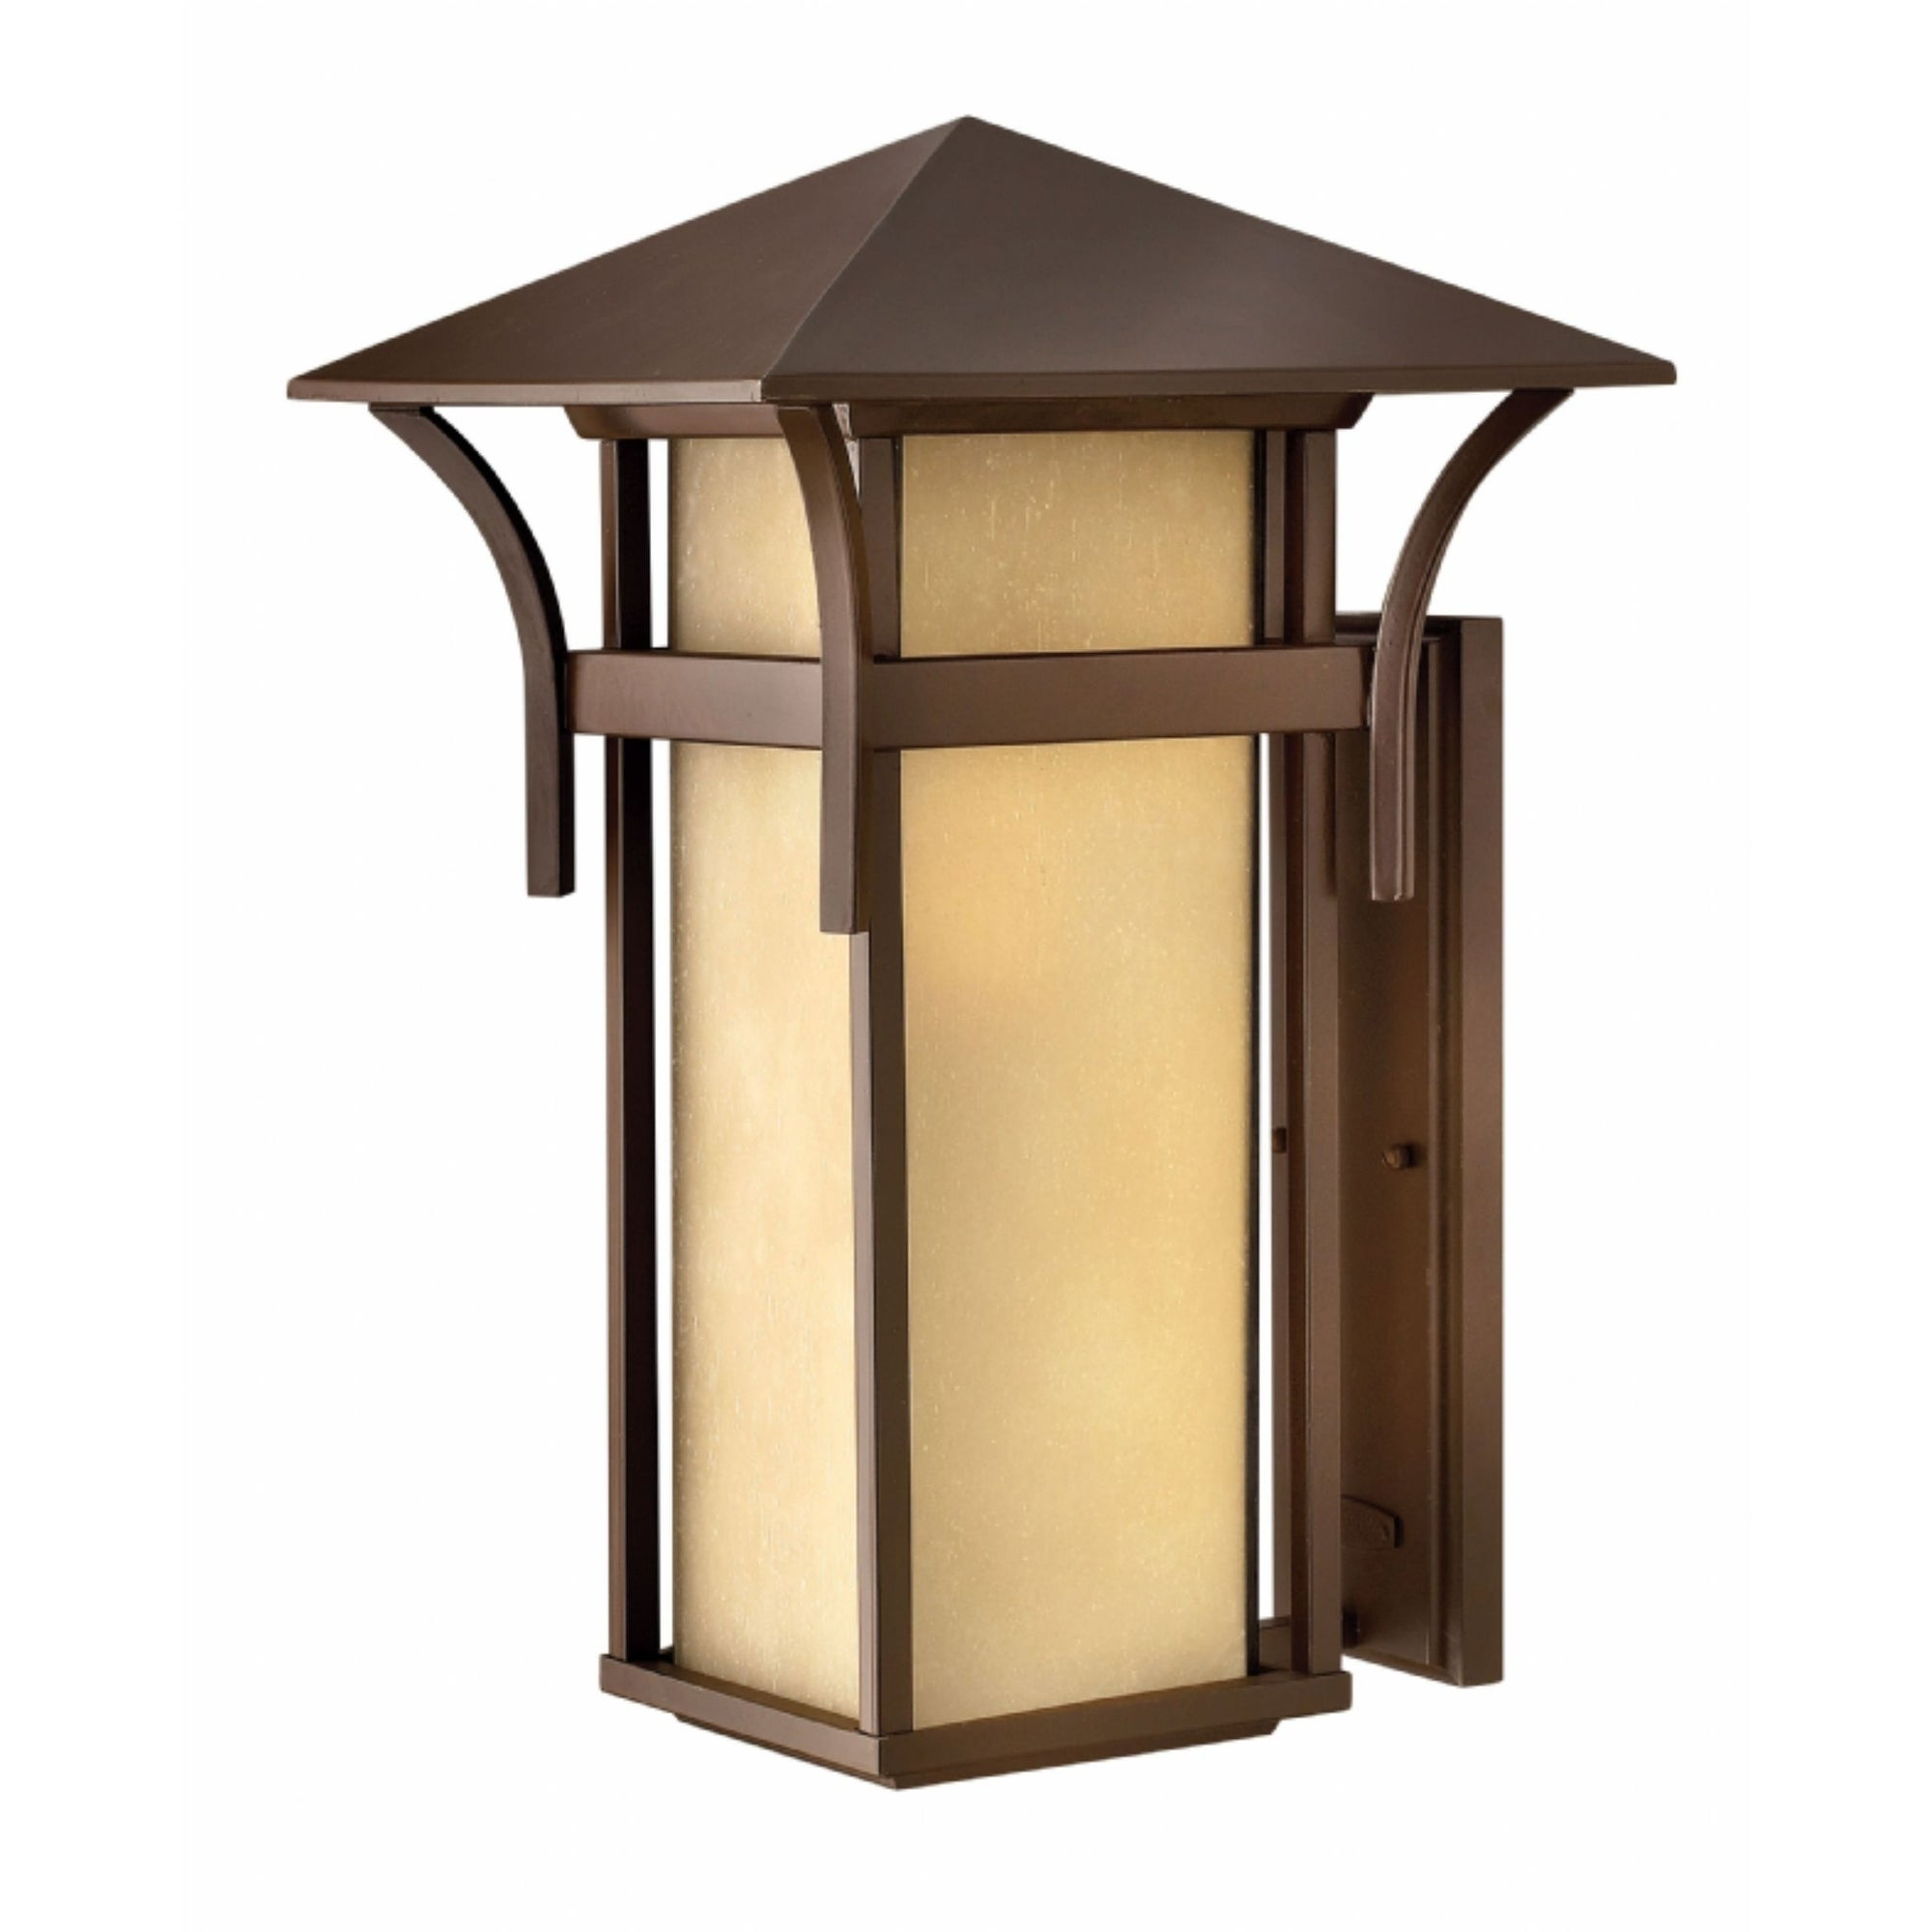 Shop Hinkley Harbor LED Outdoor Wall Mount in Anchor Bronze - Free ...